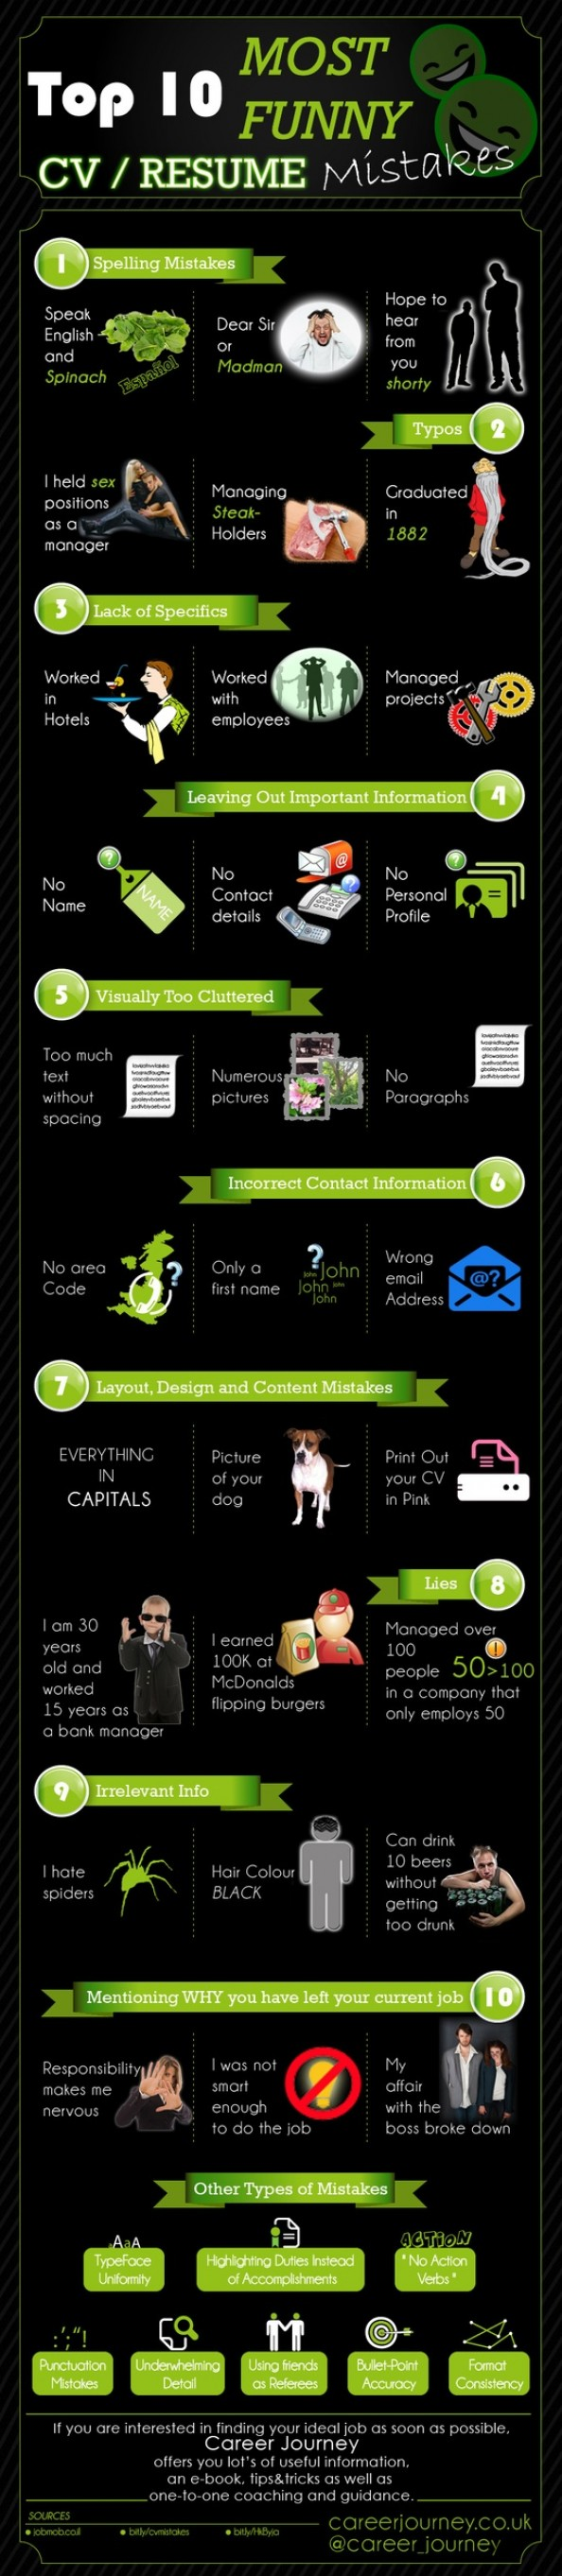 Top Ten Funniest Resume/CV Mistakes: Avoid These At ALL Cost!